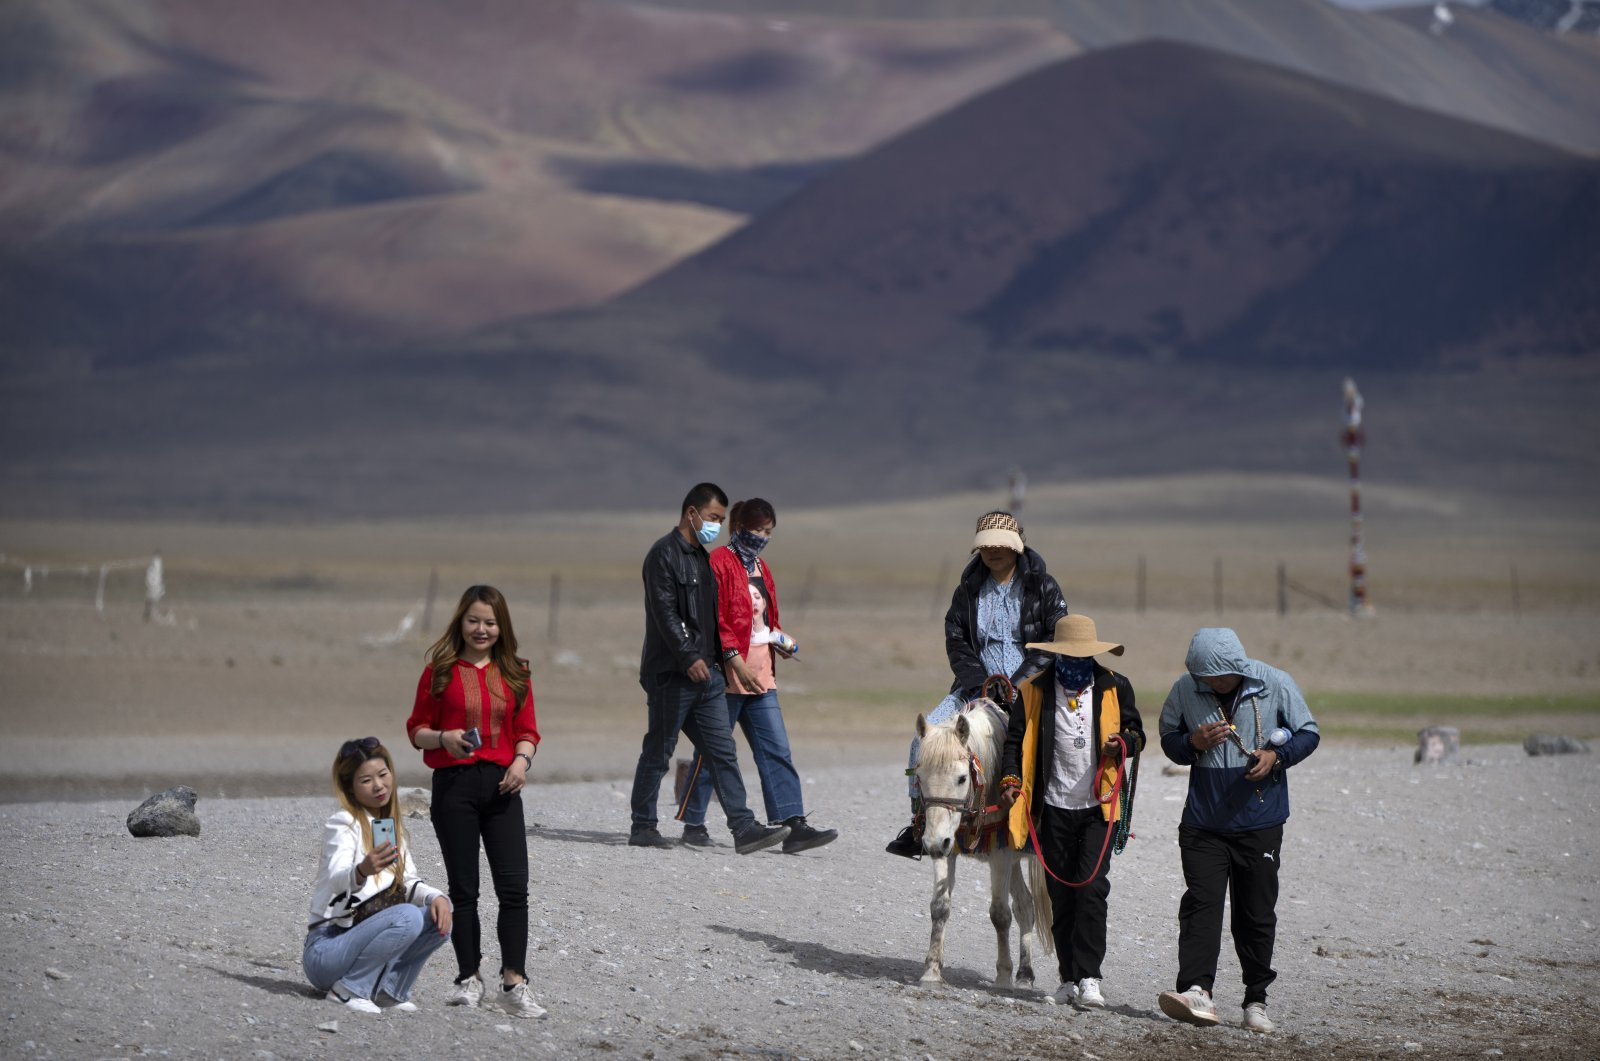 Tourists walk along the lakeshore and ride a pony in Namtso in western China's Tibet Autonomous Region, China, June 2, 2021. (AP Photo)